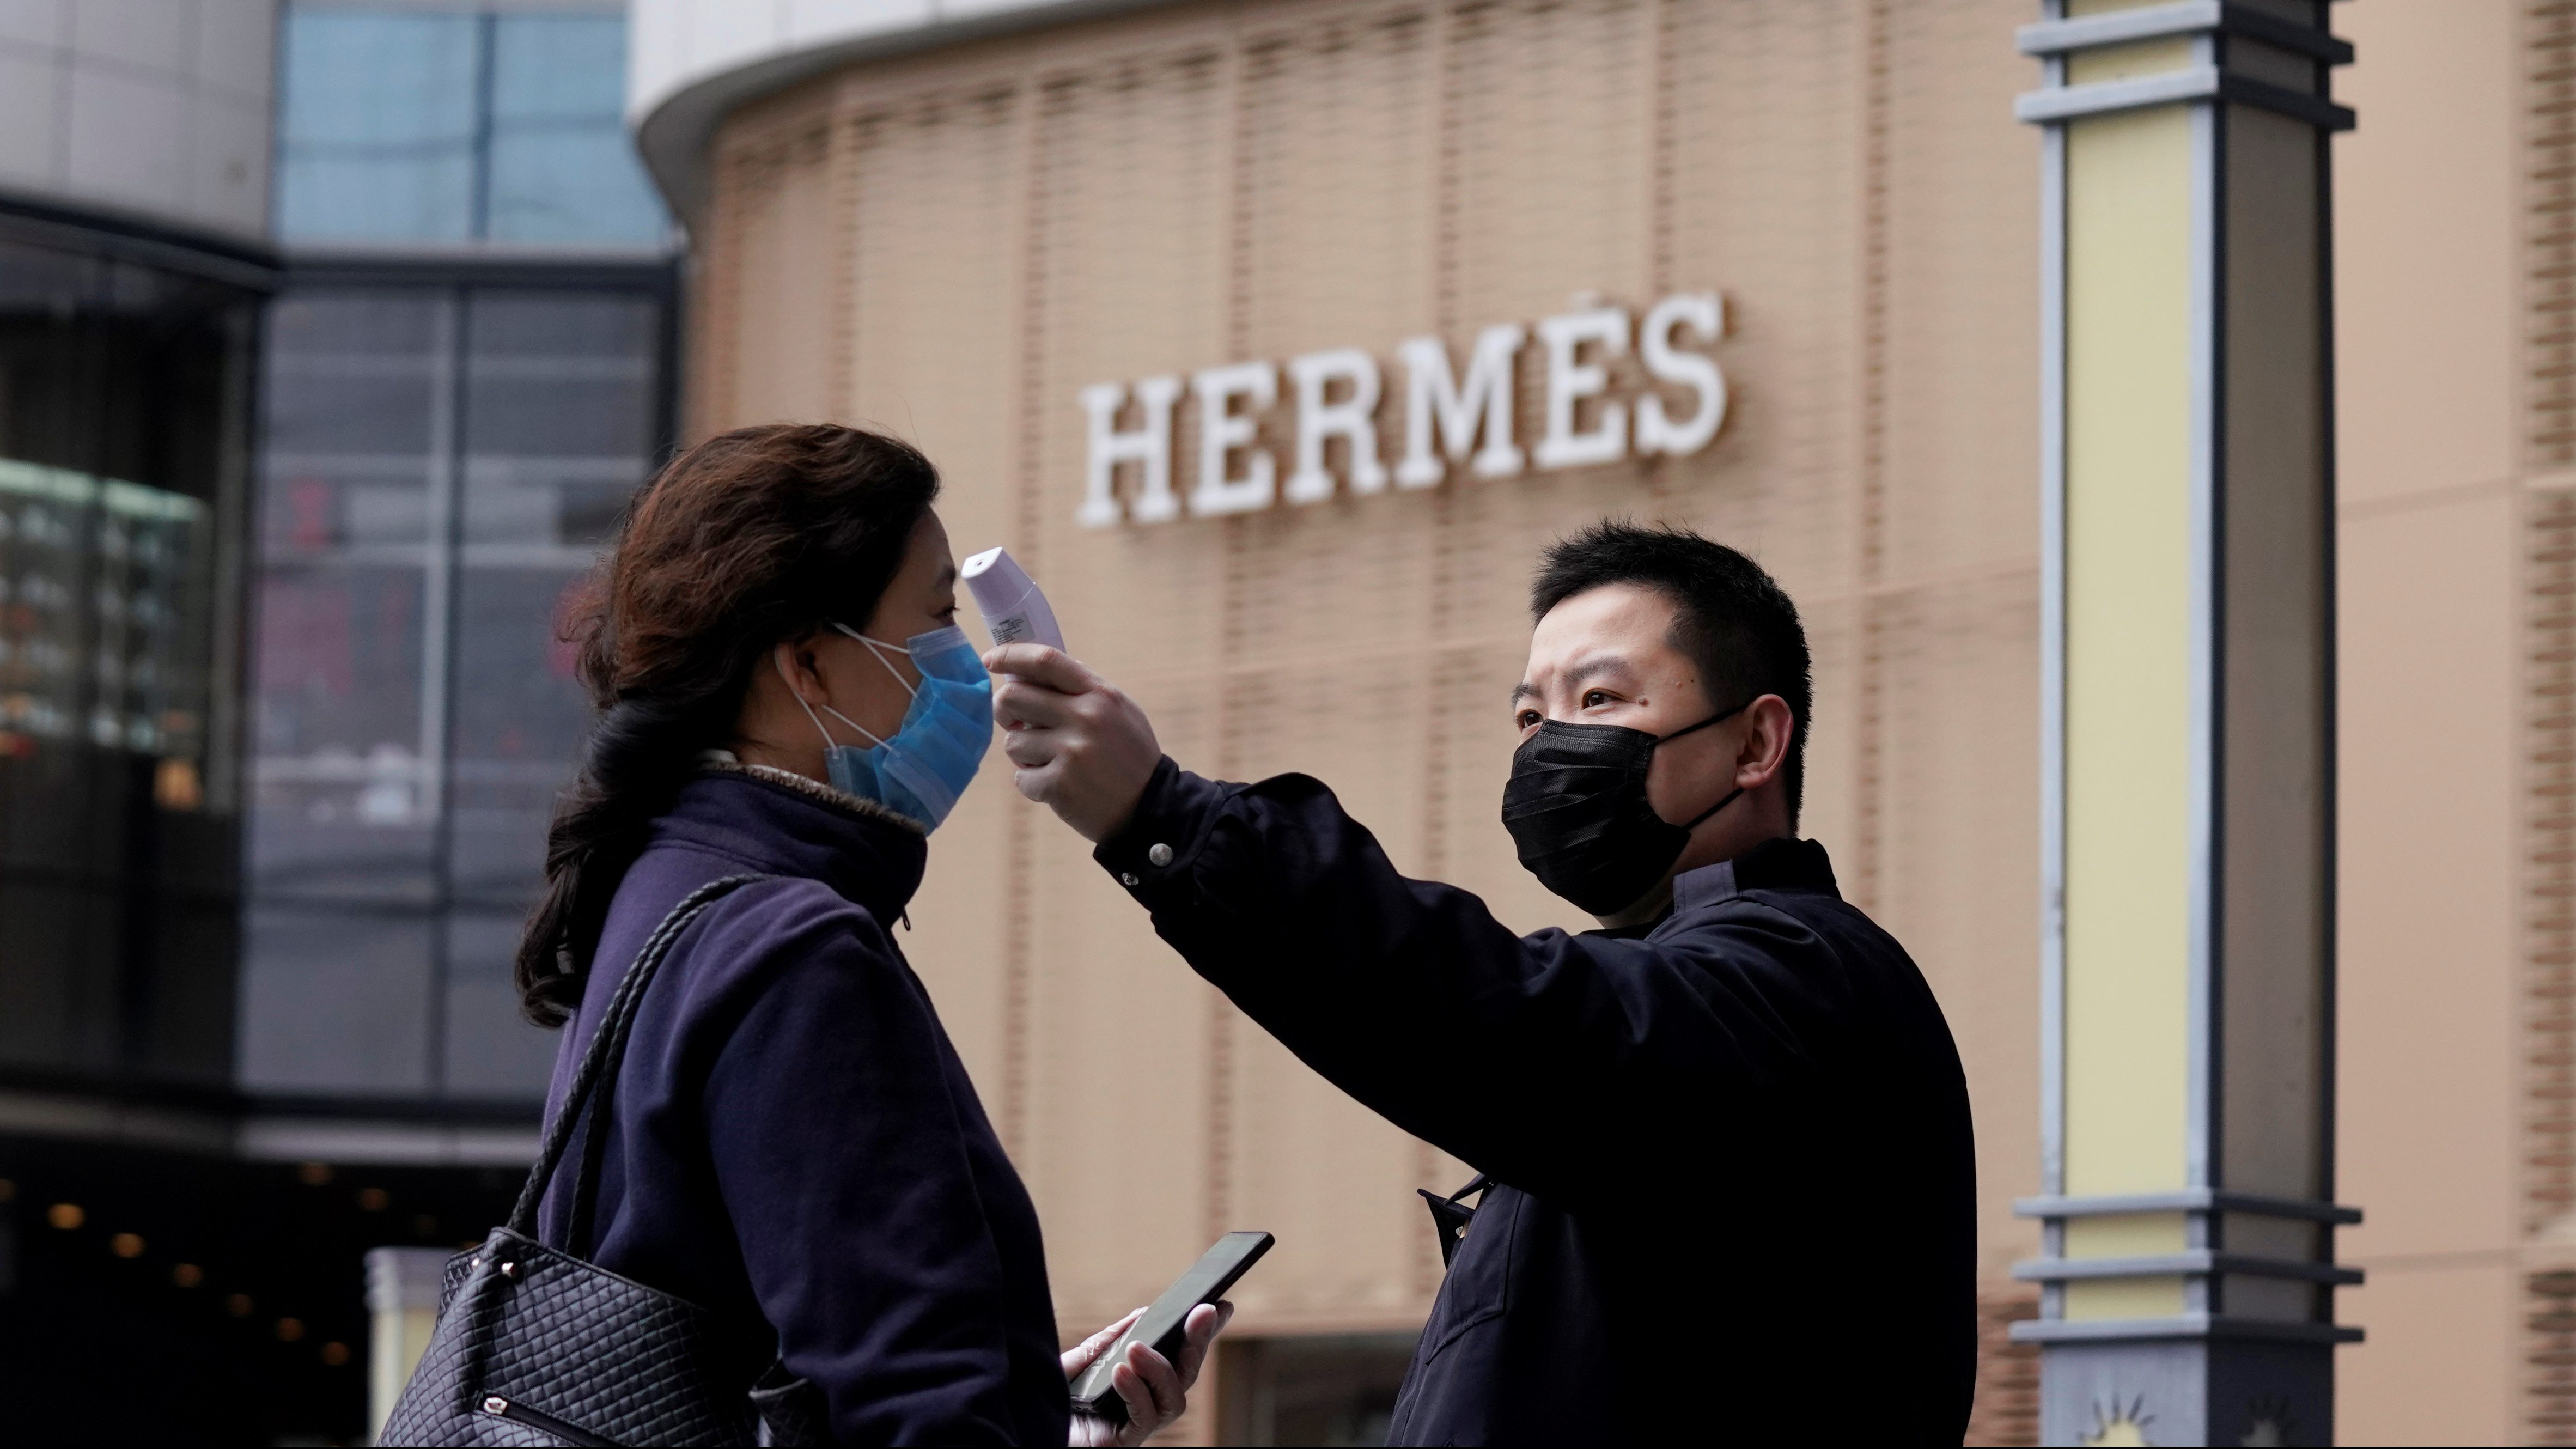 A management staff measures the body temperature of a woman entering a shopping mall near a Hermes store in Wuhan